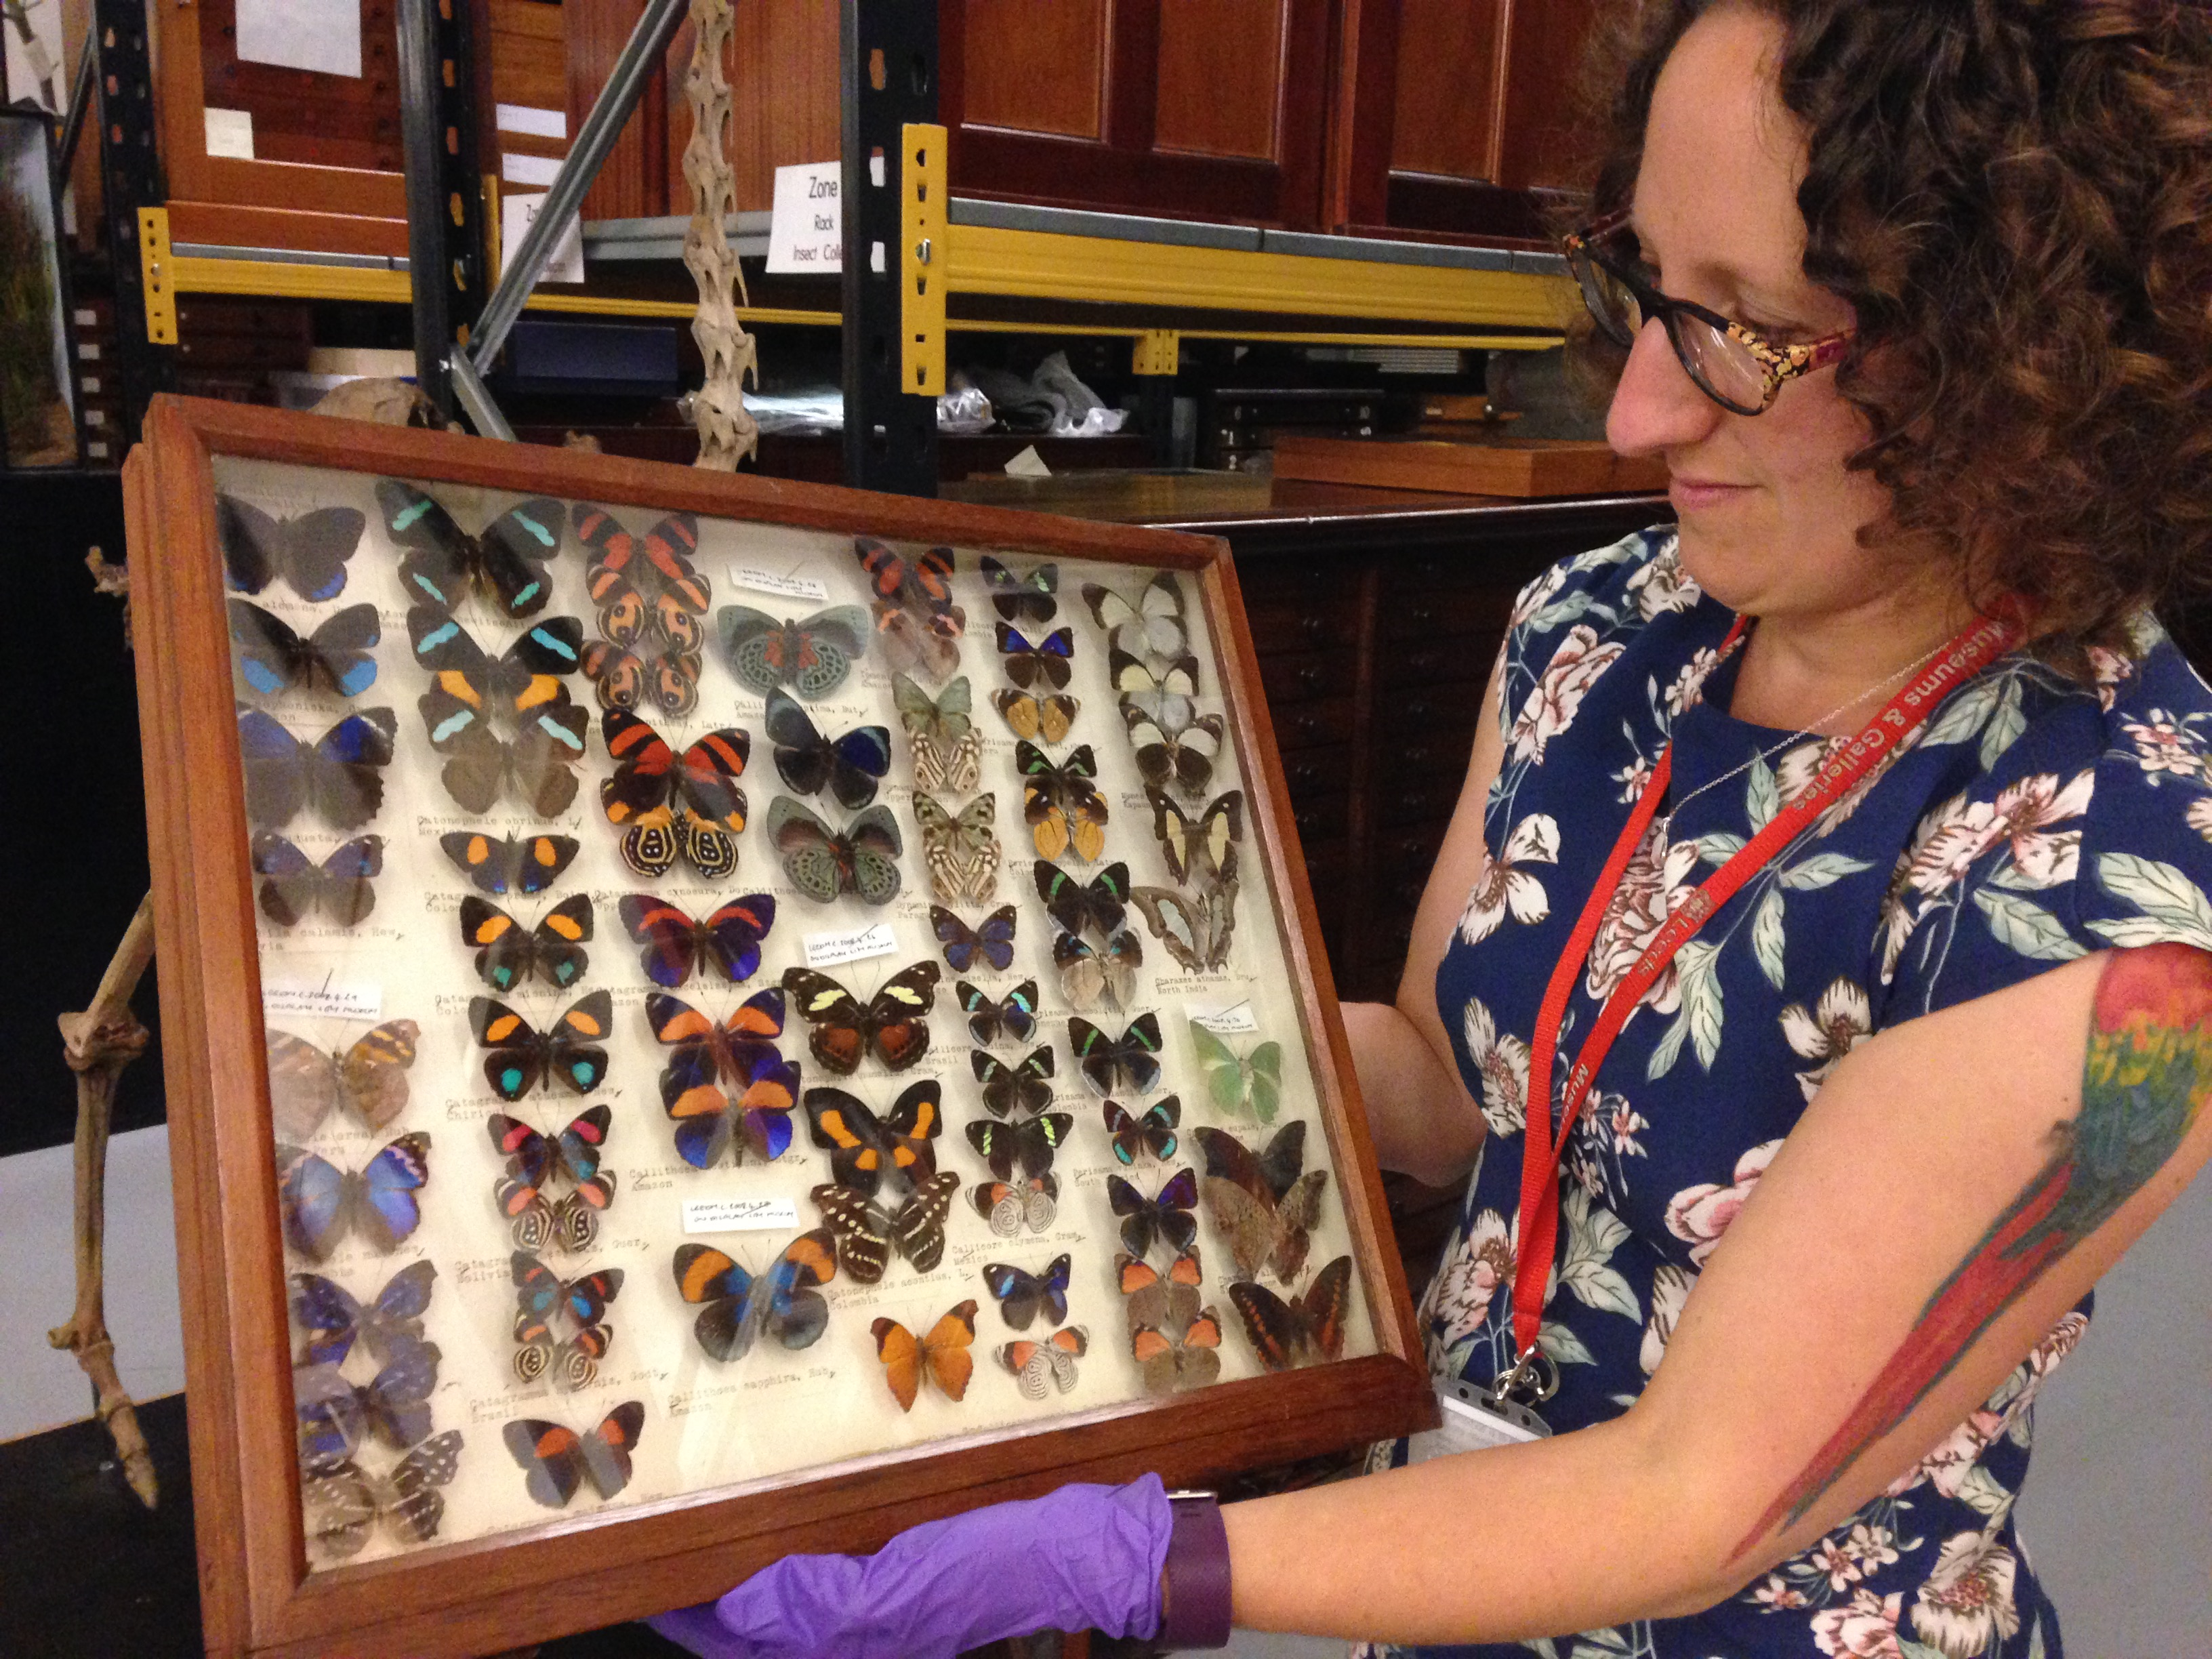 A curator holds a frame full of different butterfly specimens